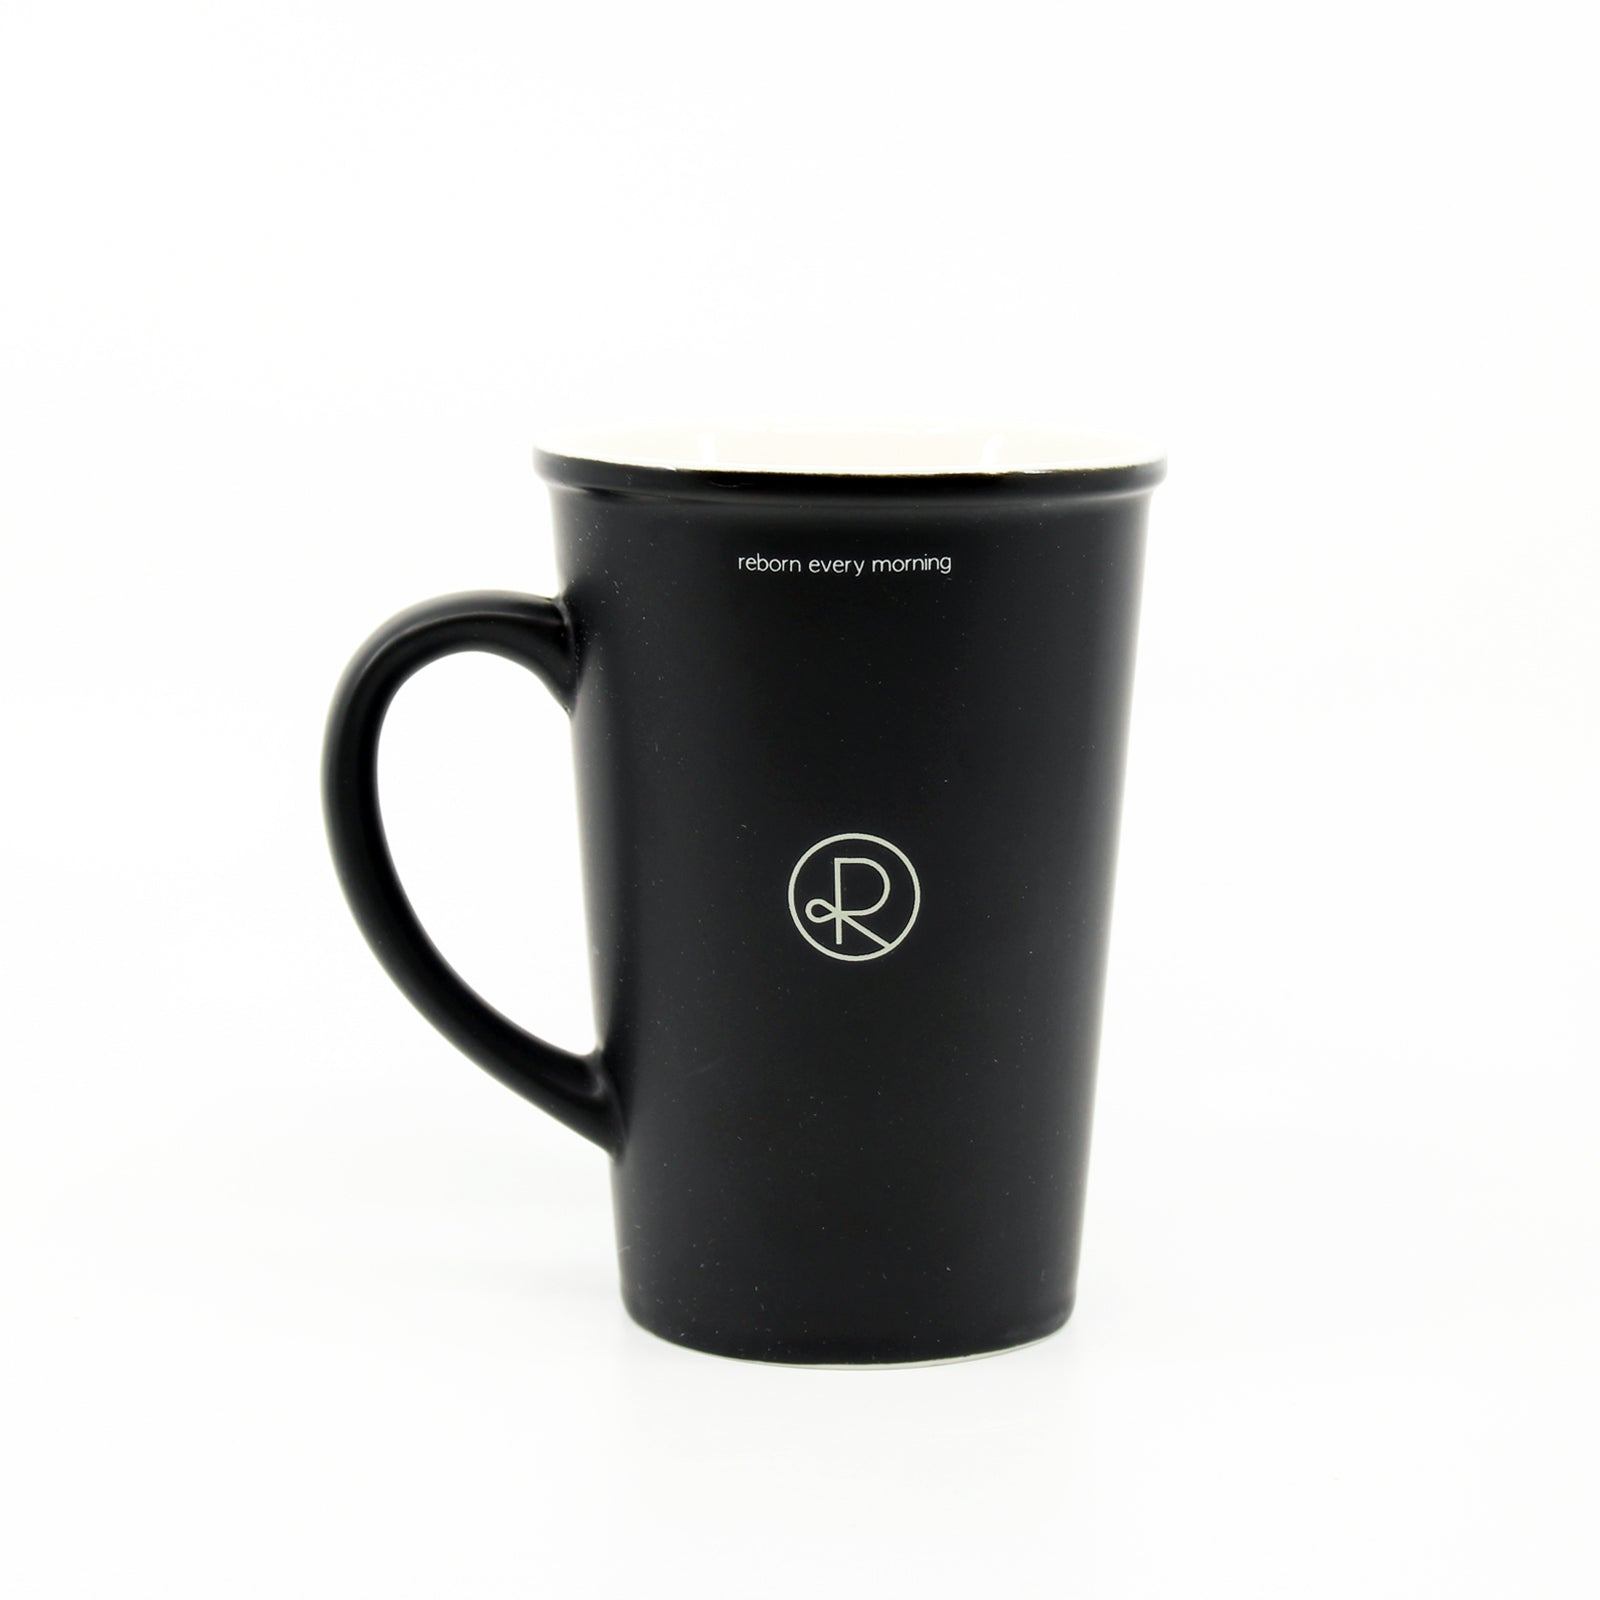 Reborn Coffee Mug Black. Reborn Every Morning. Enjoy  Every Drip. Color: Black with White . C-Handle . Perfect for Reborn Coffee Fans